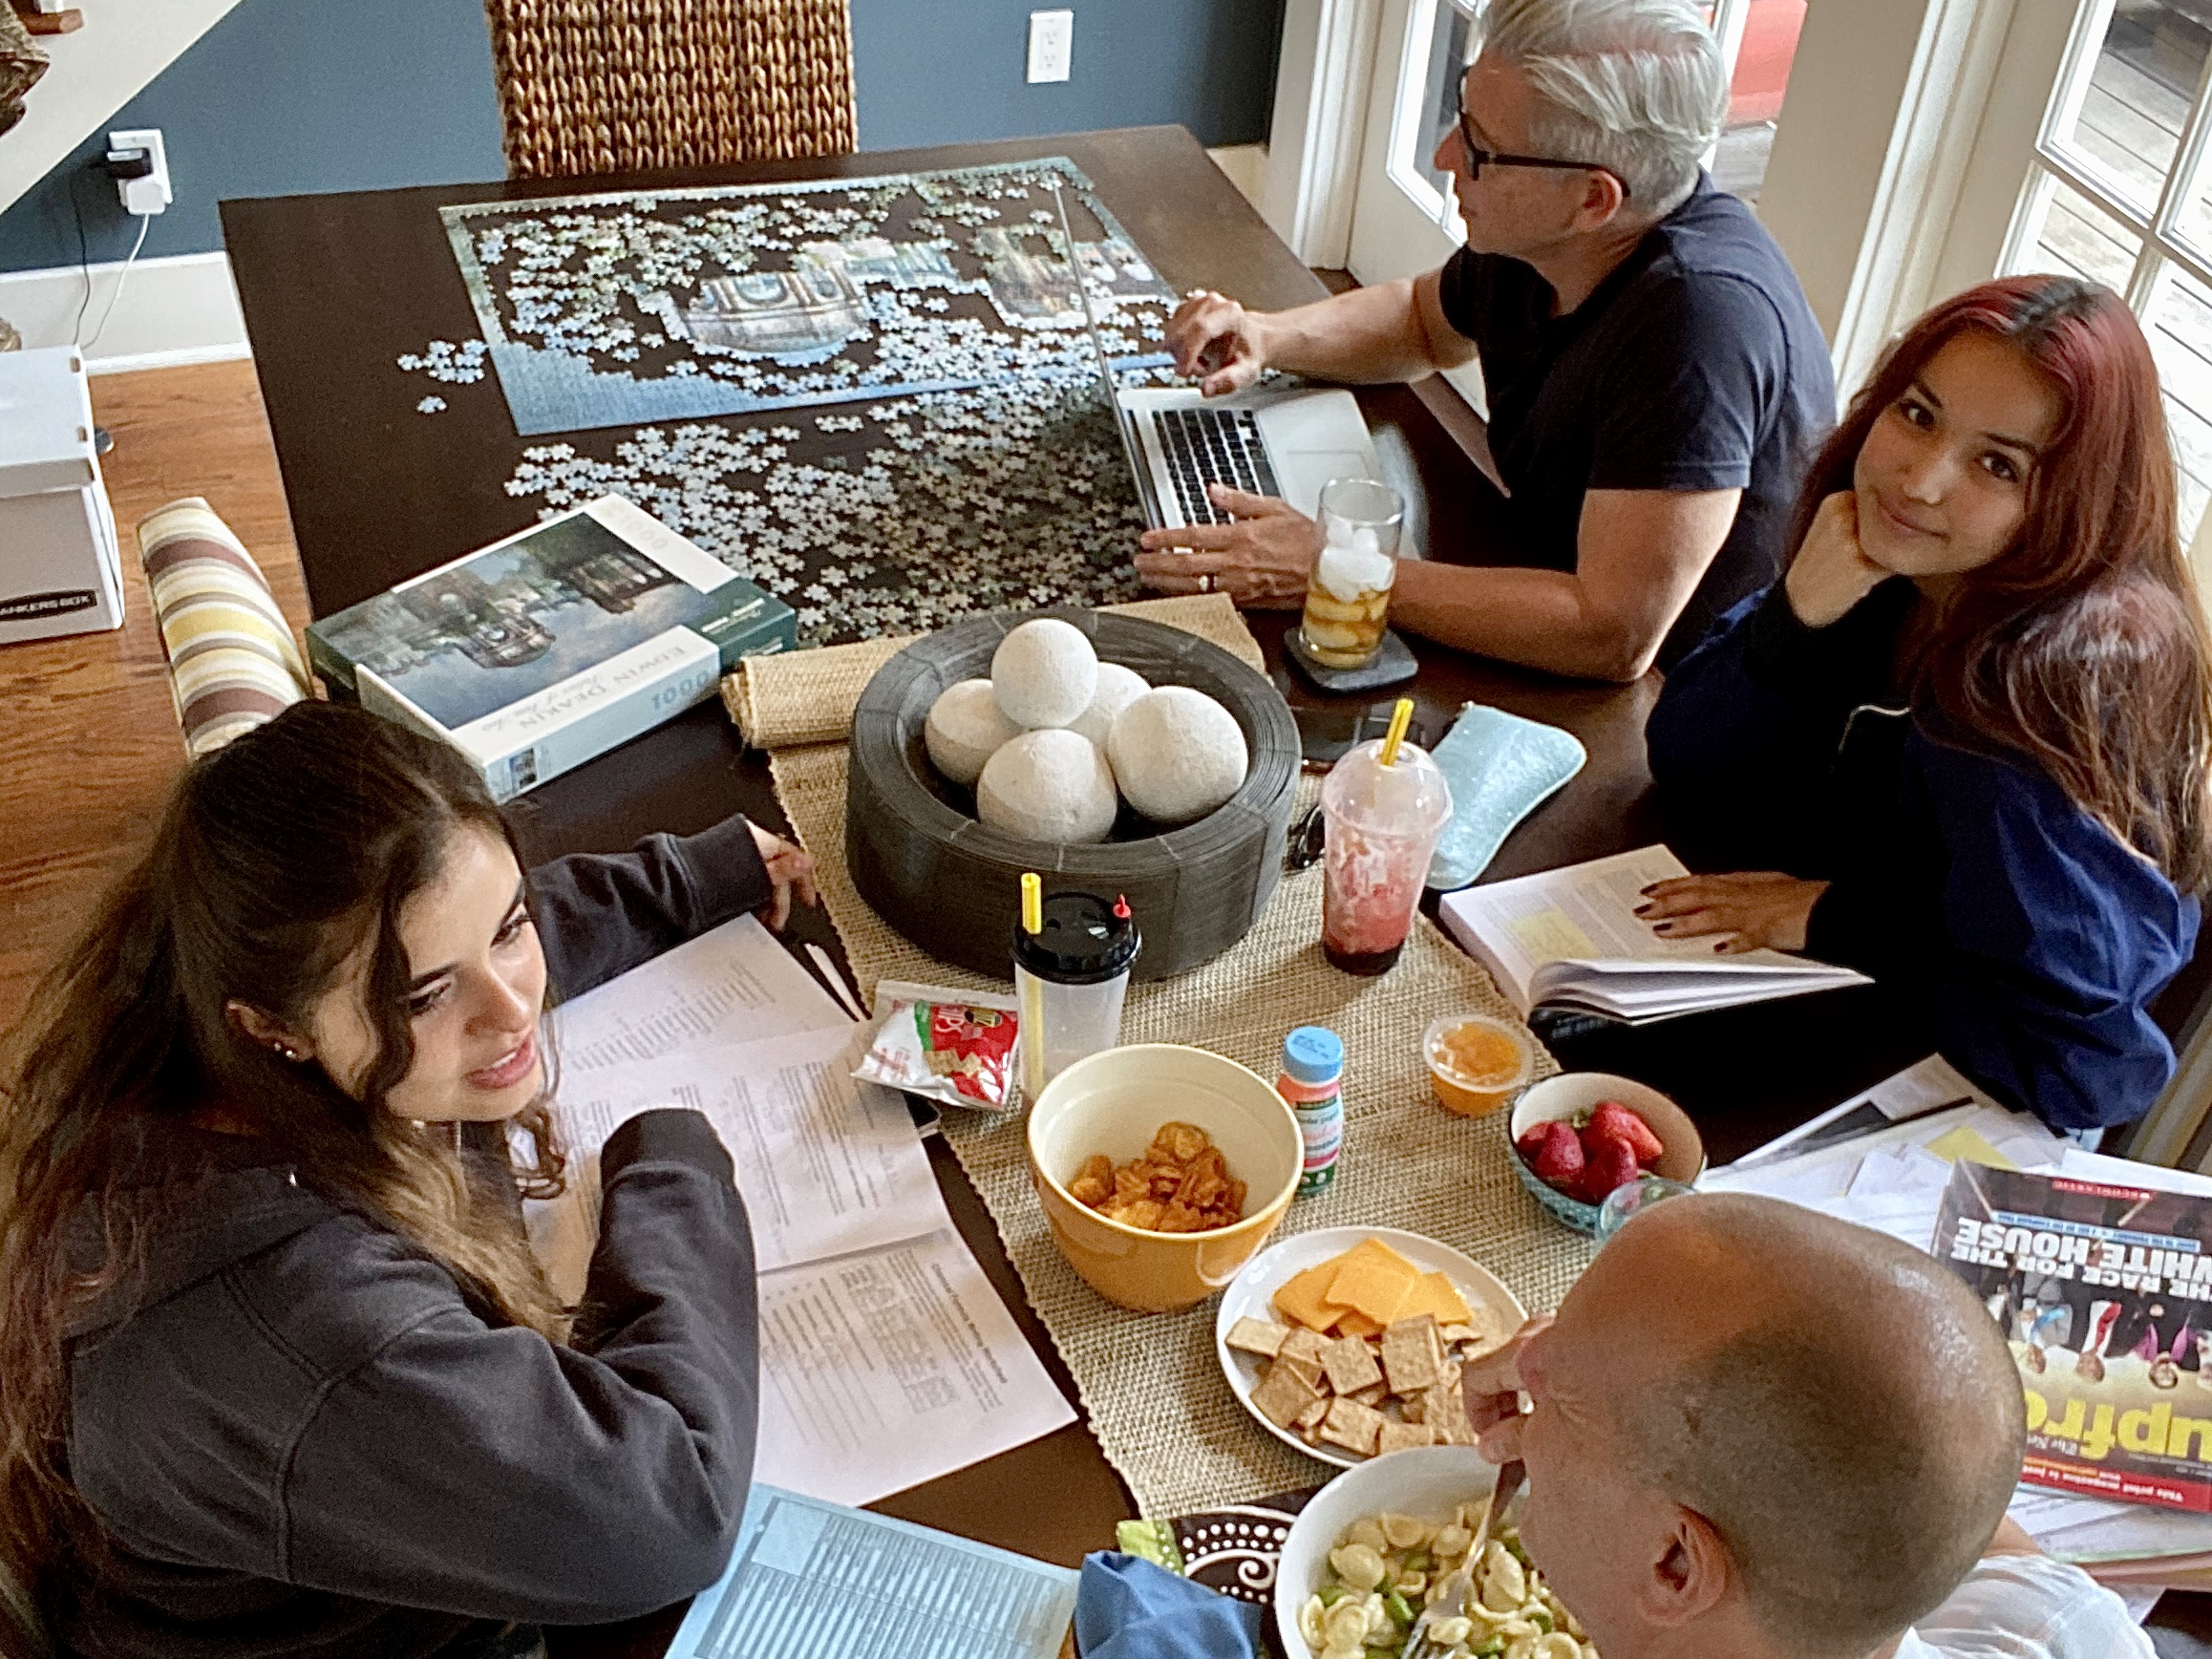 family multi-tasking at dinner table during COVID with food, jigsaw puzzle, homework and laptops.